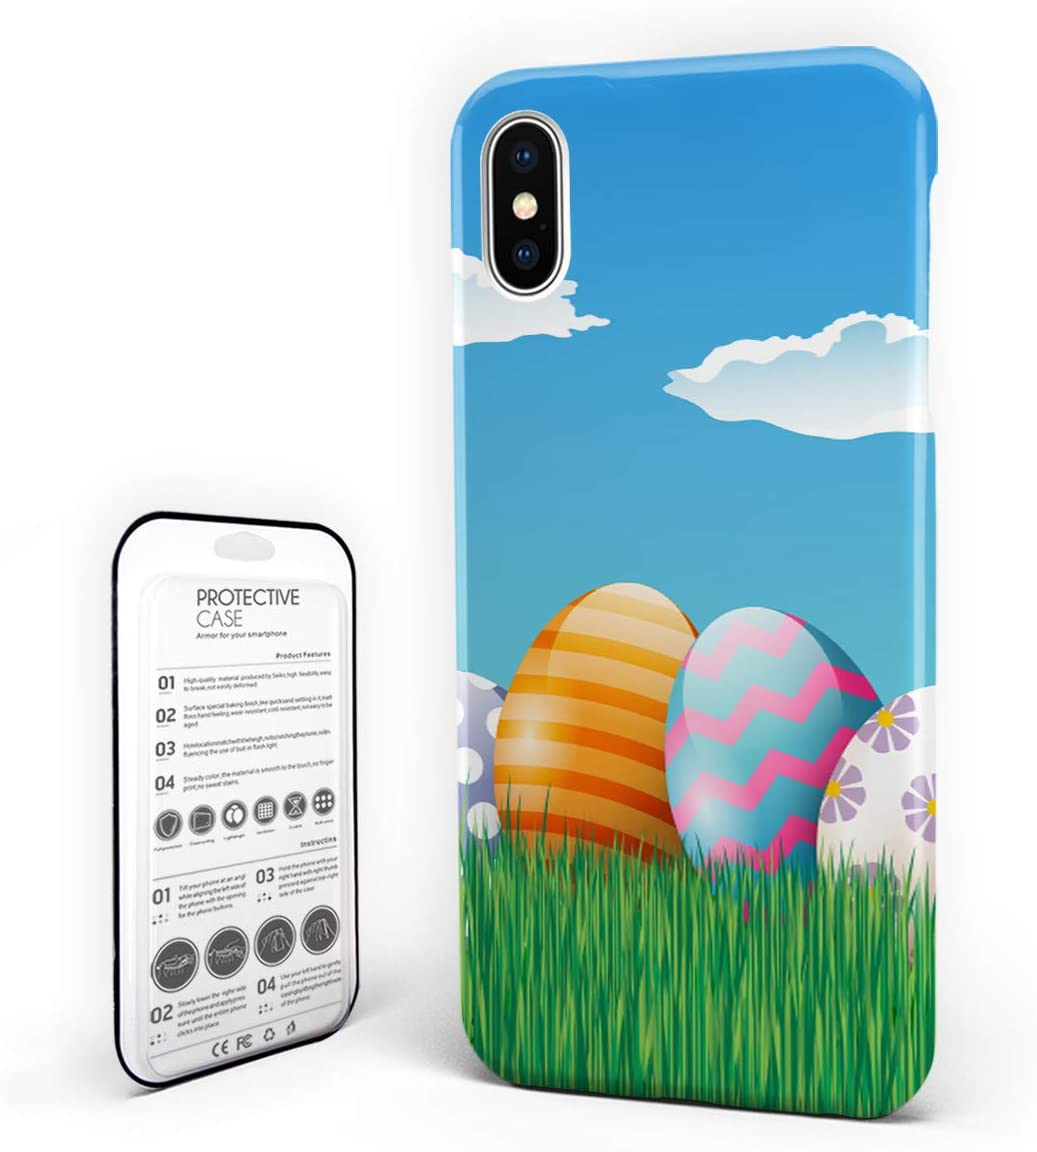 DJI Customize Phone Protective Cover Happy Easter Colorful Eggs in Grass Artwork Spring Festival Ultra Slim Protective Hard Plastic Case Cover for iPhone x